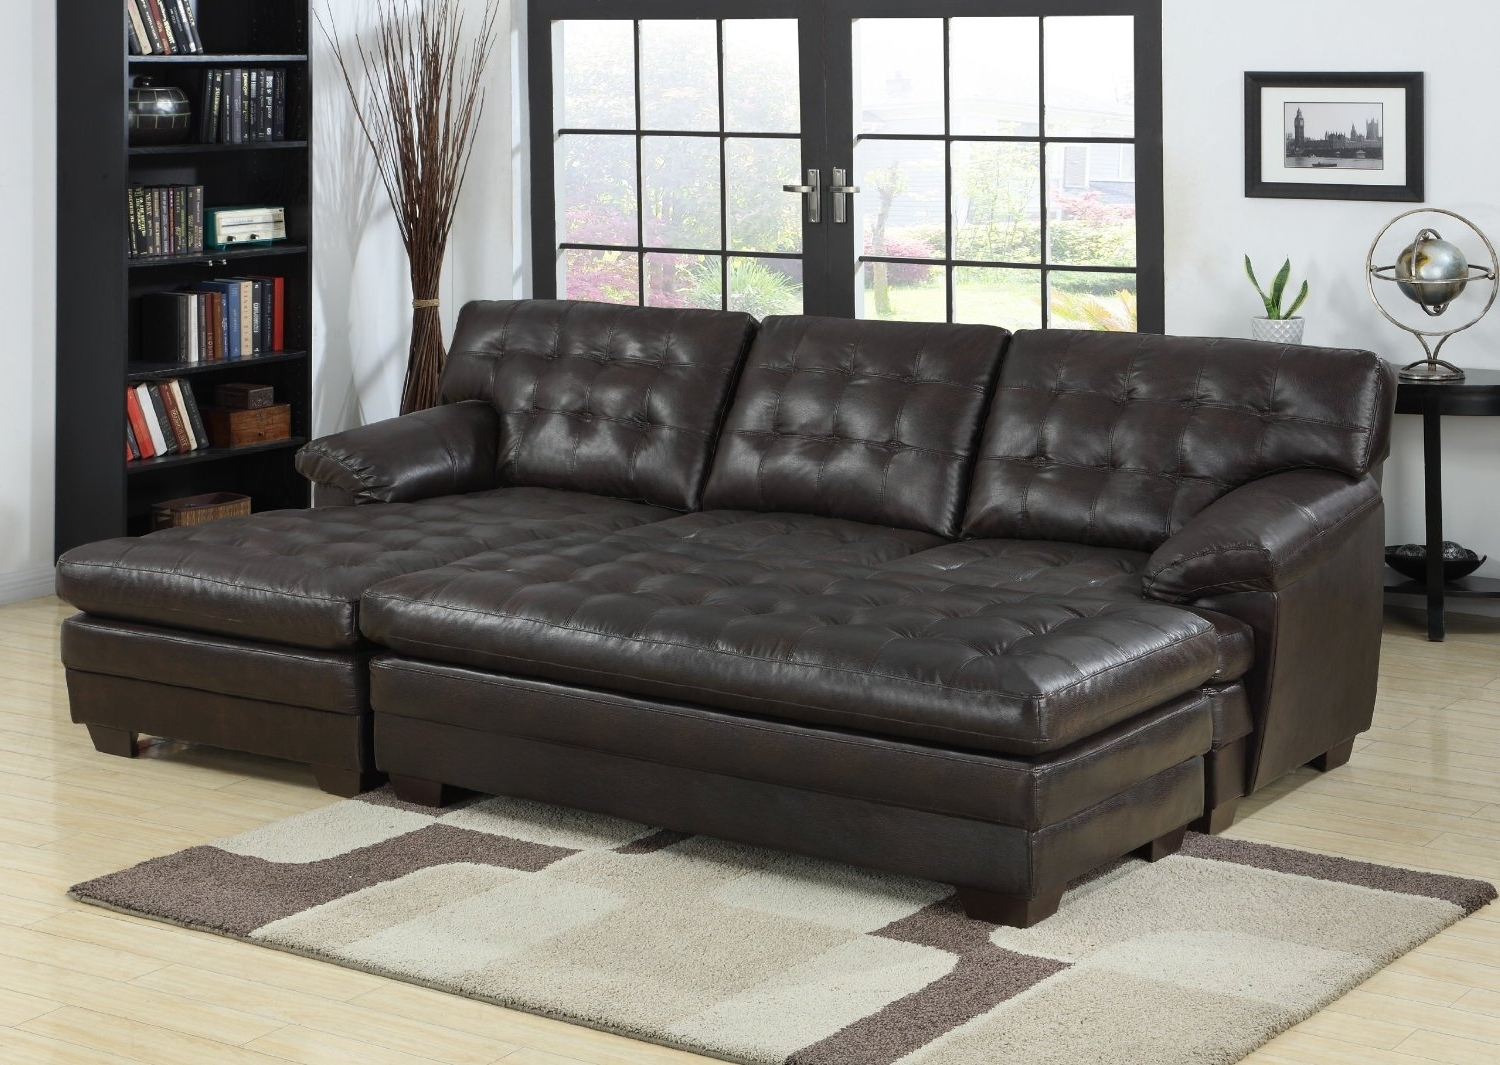 Well Known Double Chaise Lounge Sofas Regarding Double Chaise Lounge Sofa Image Gallery — The Home Redesign : The (View 15 of 15)